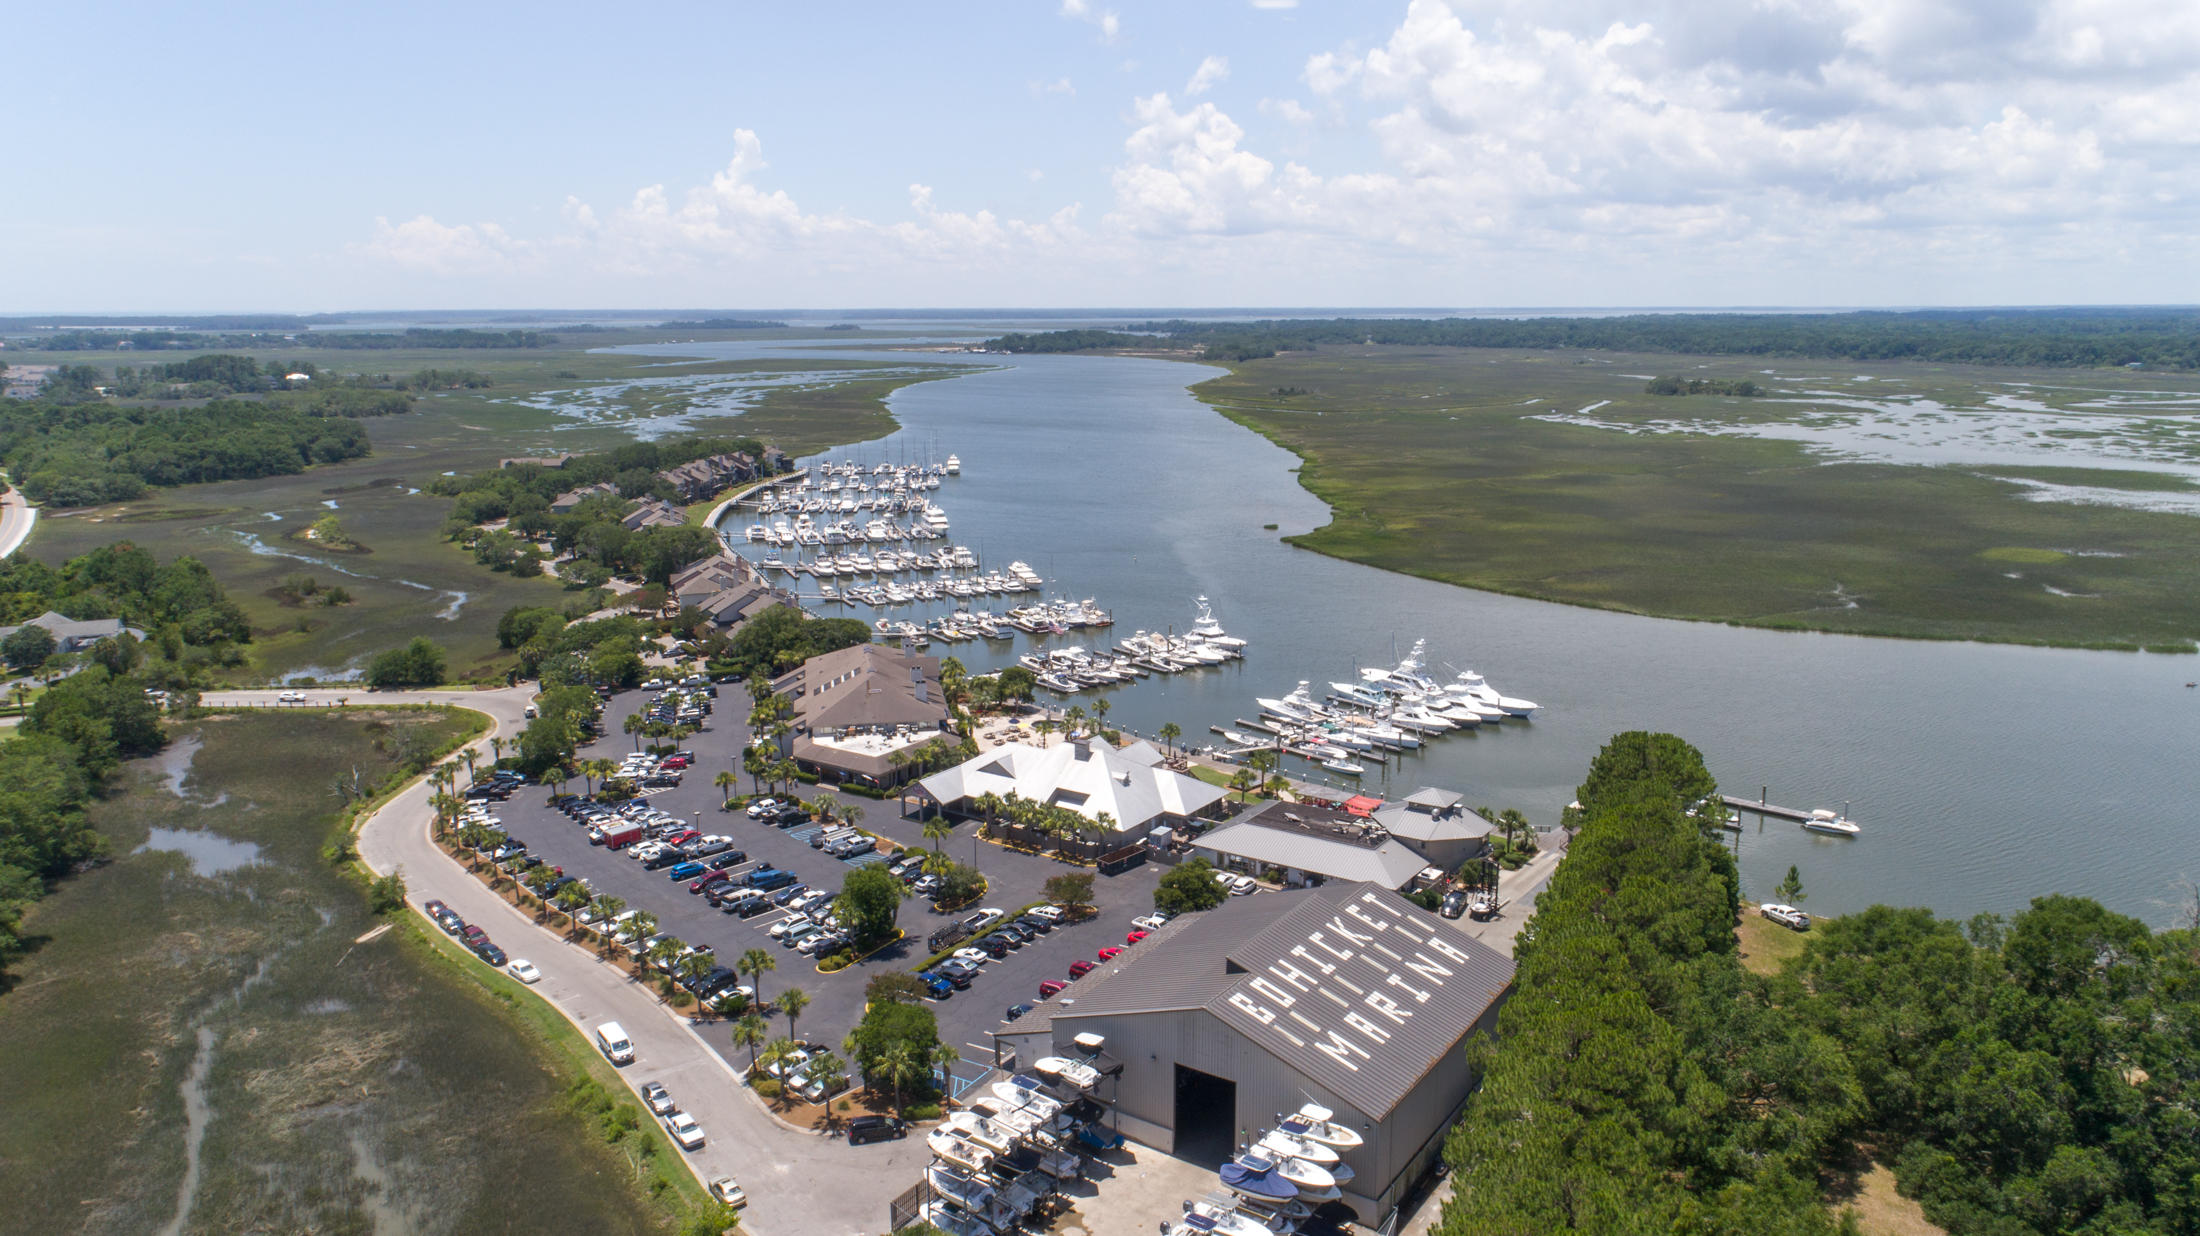 Seabrook Island Homes For Sale - 1880 Andell Bluff, Seabrook Island, SC - 6